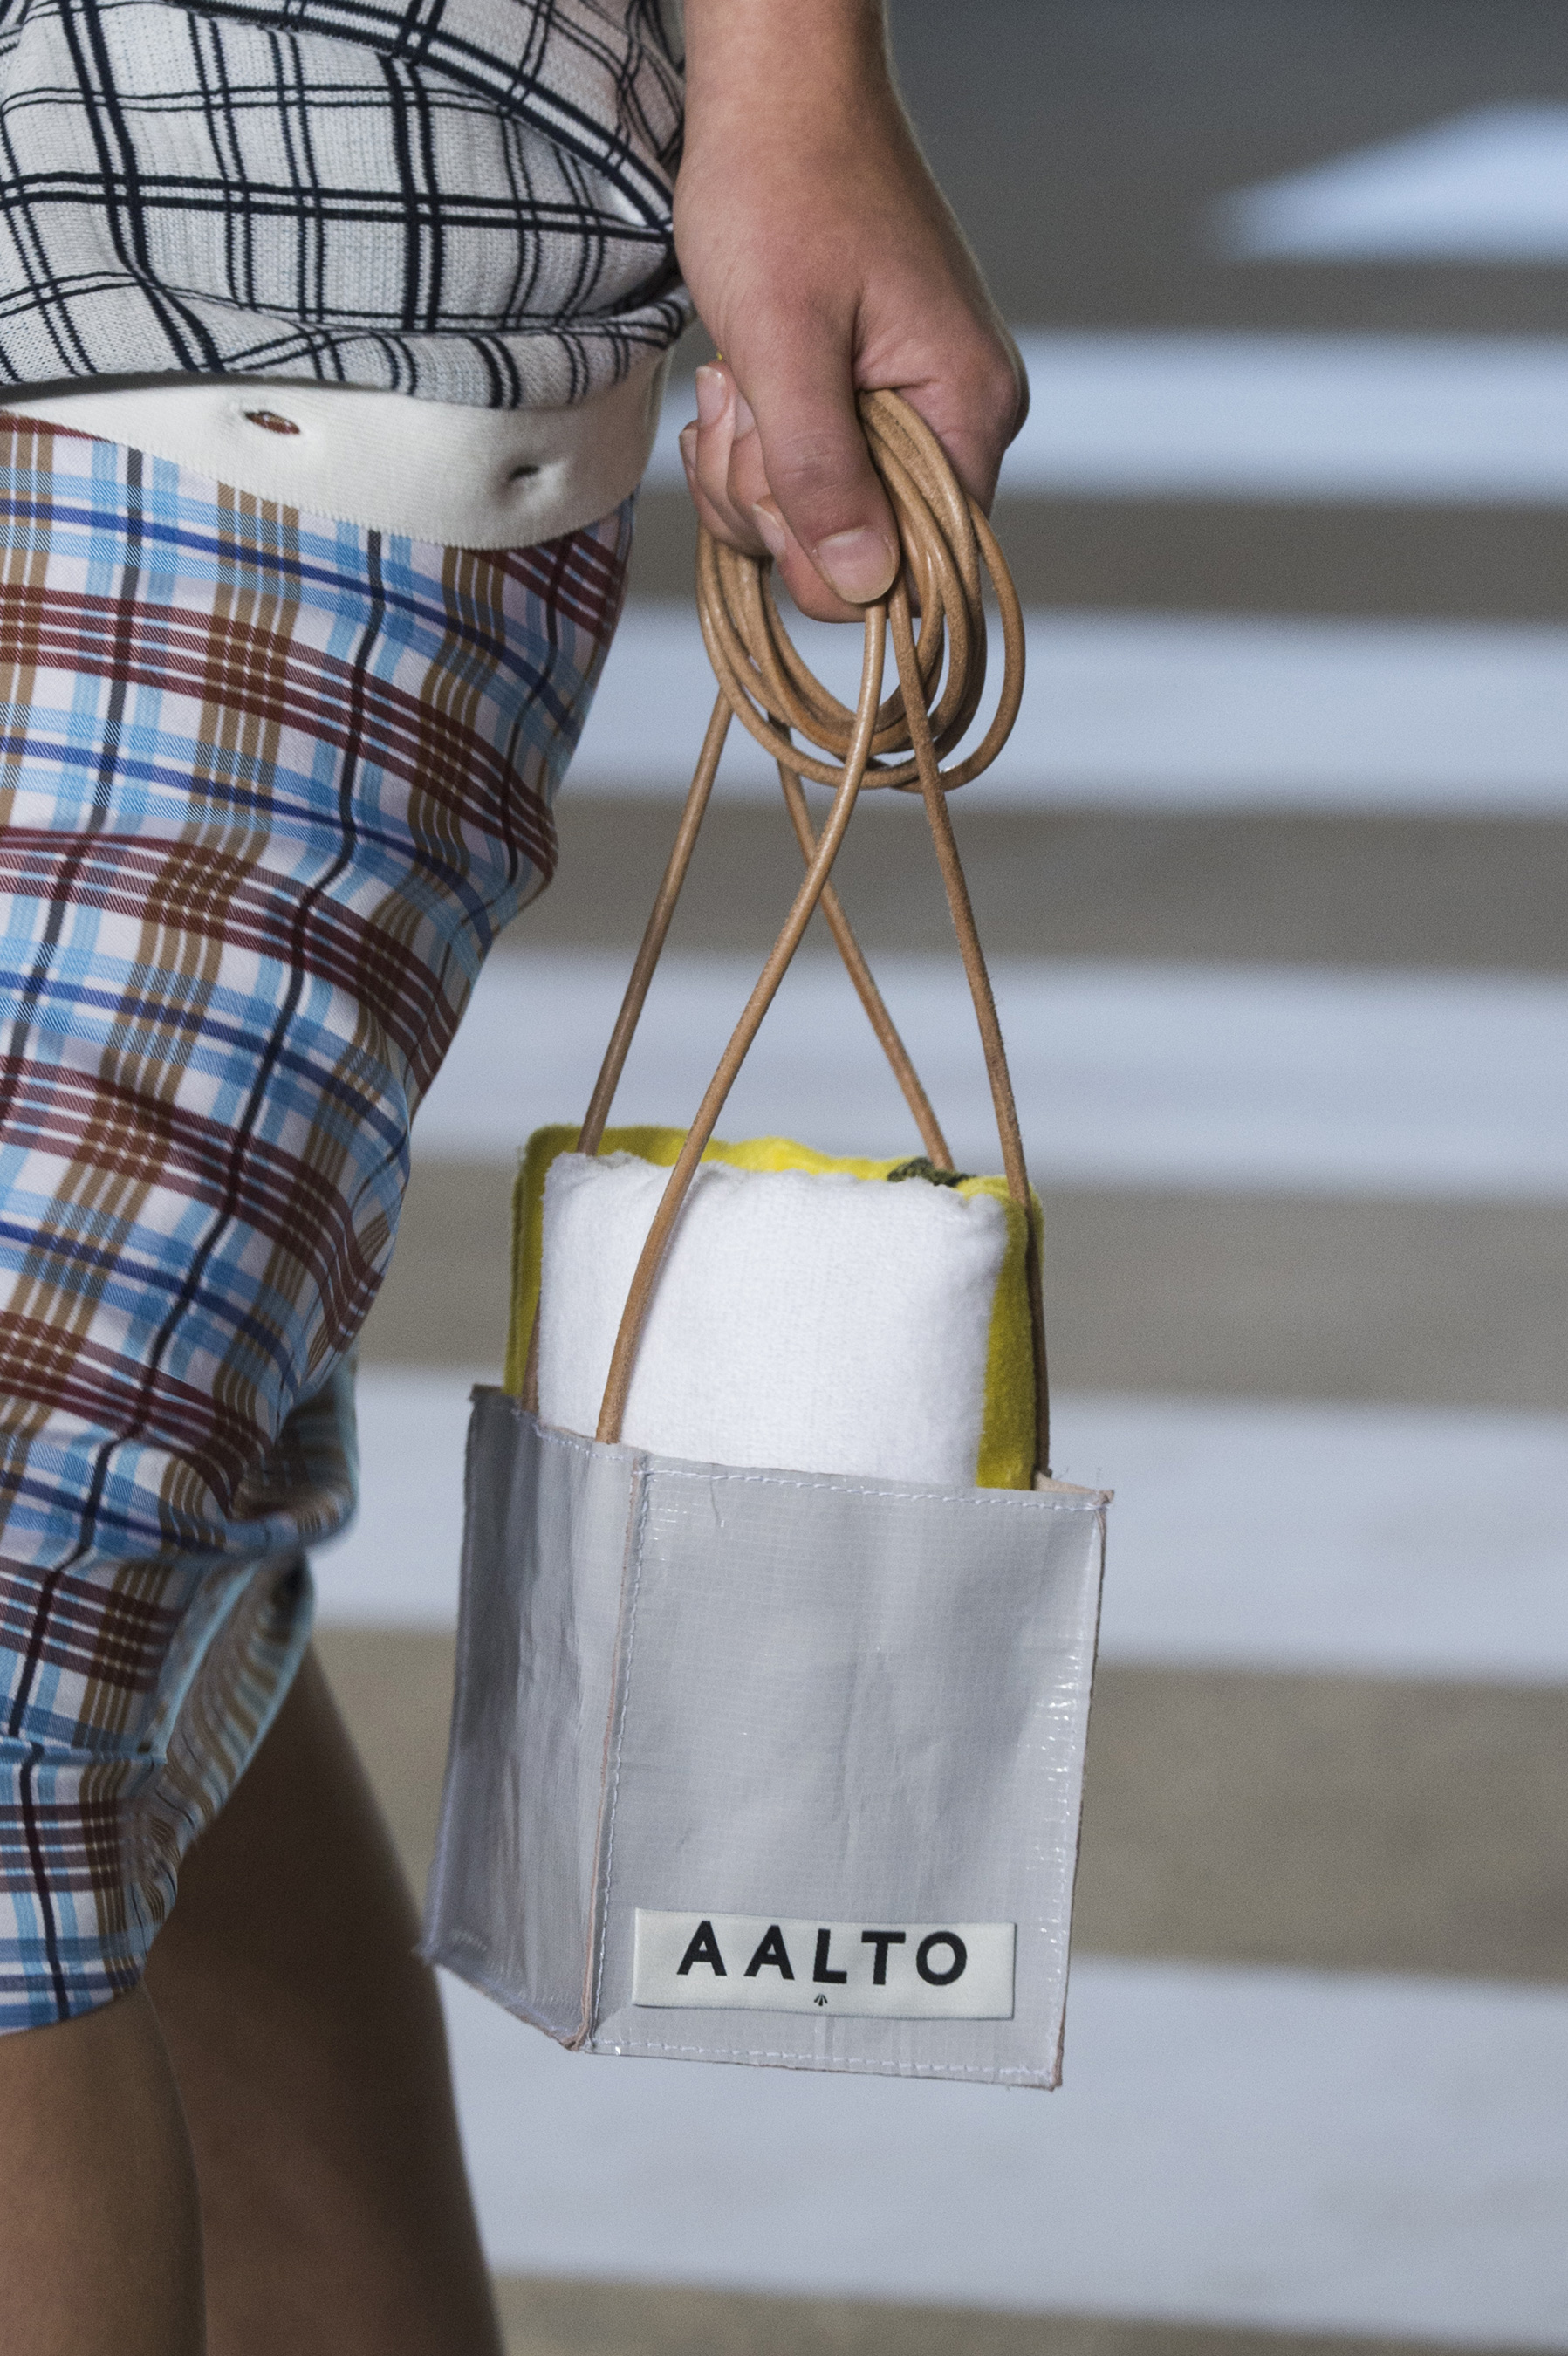 Aalto Spring 2019  Fashion Show Details